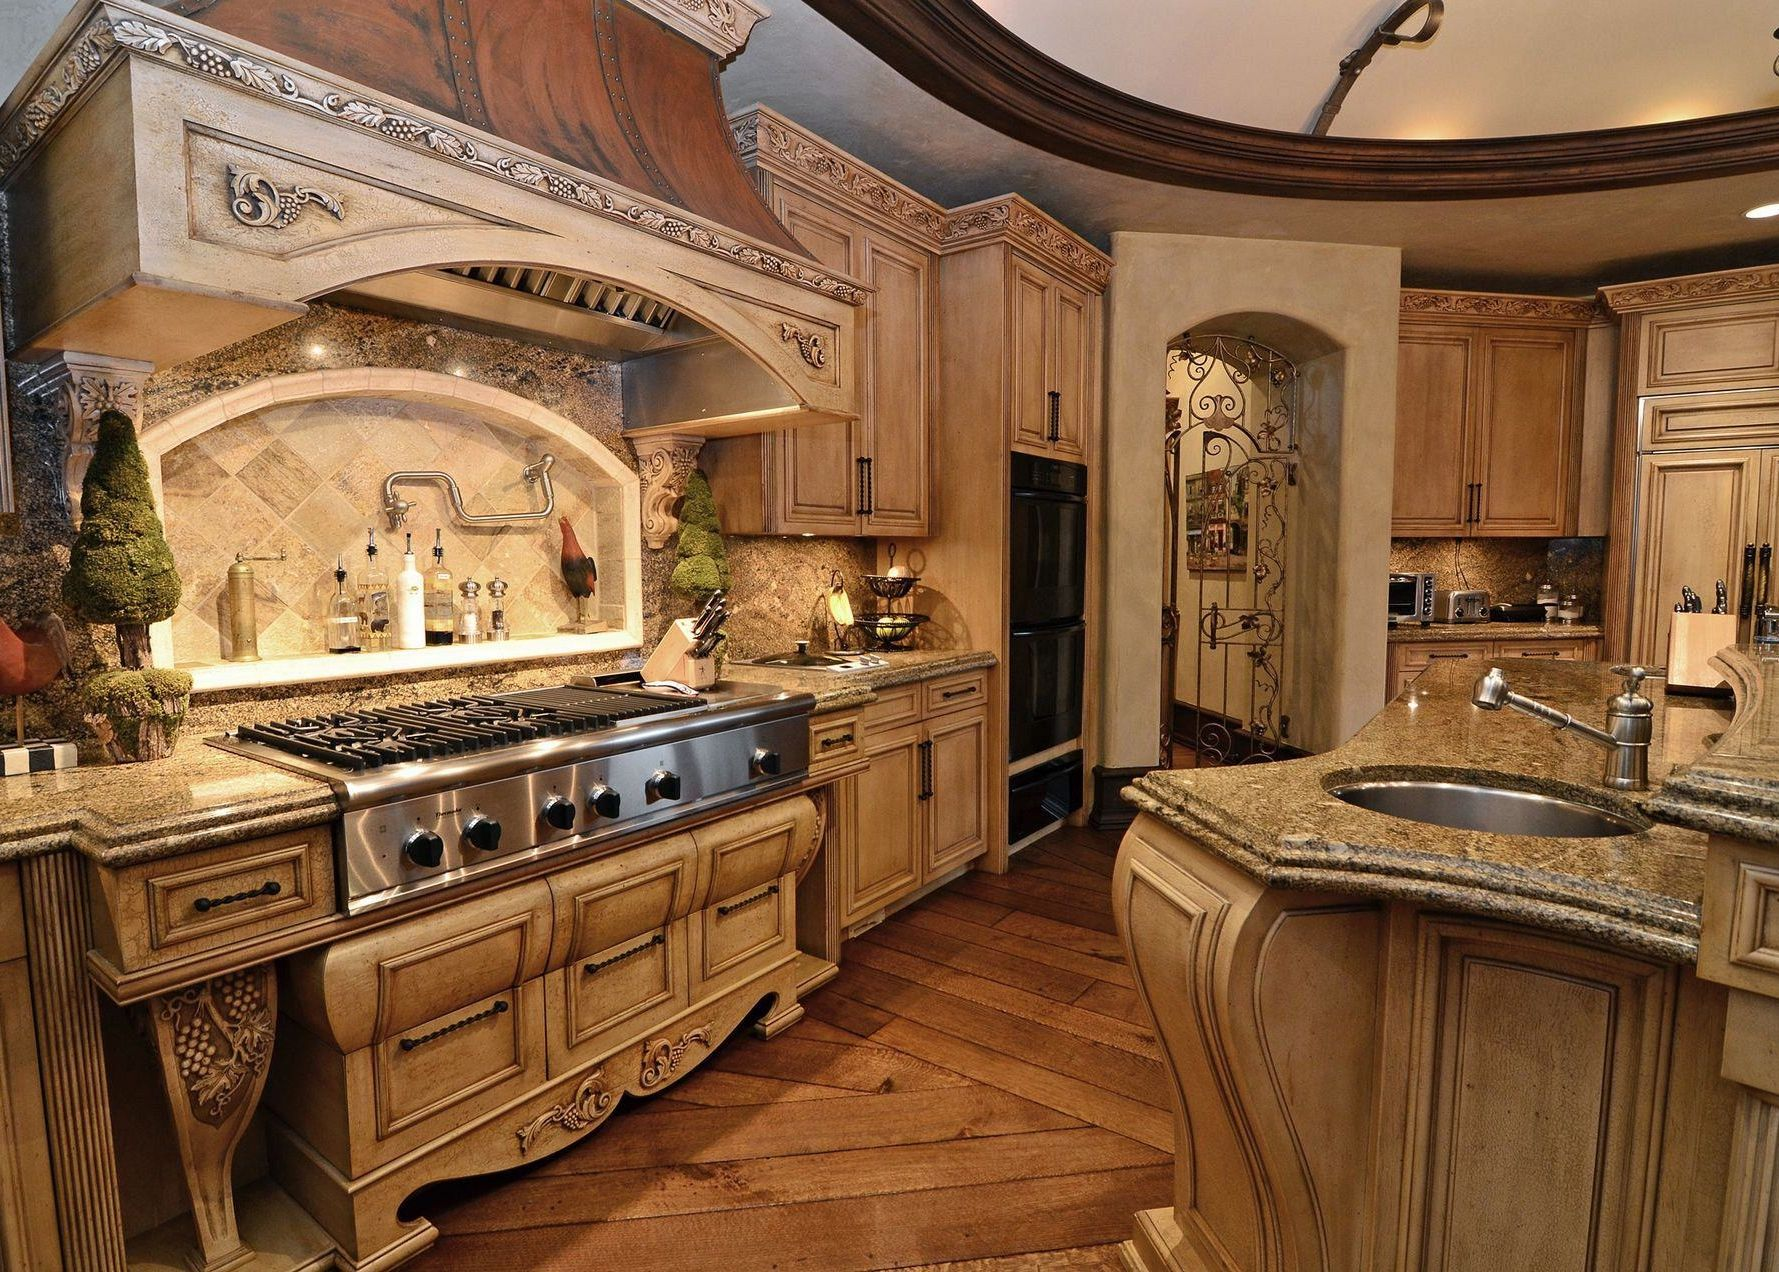 Old World Kitchen Design Old World Kitchens Interior And Exterior Design Ideas Kitchens